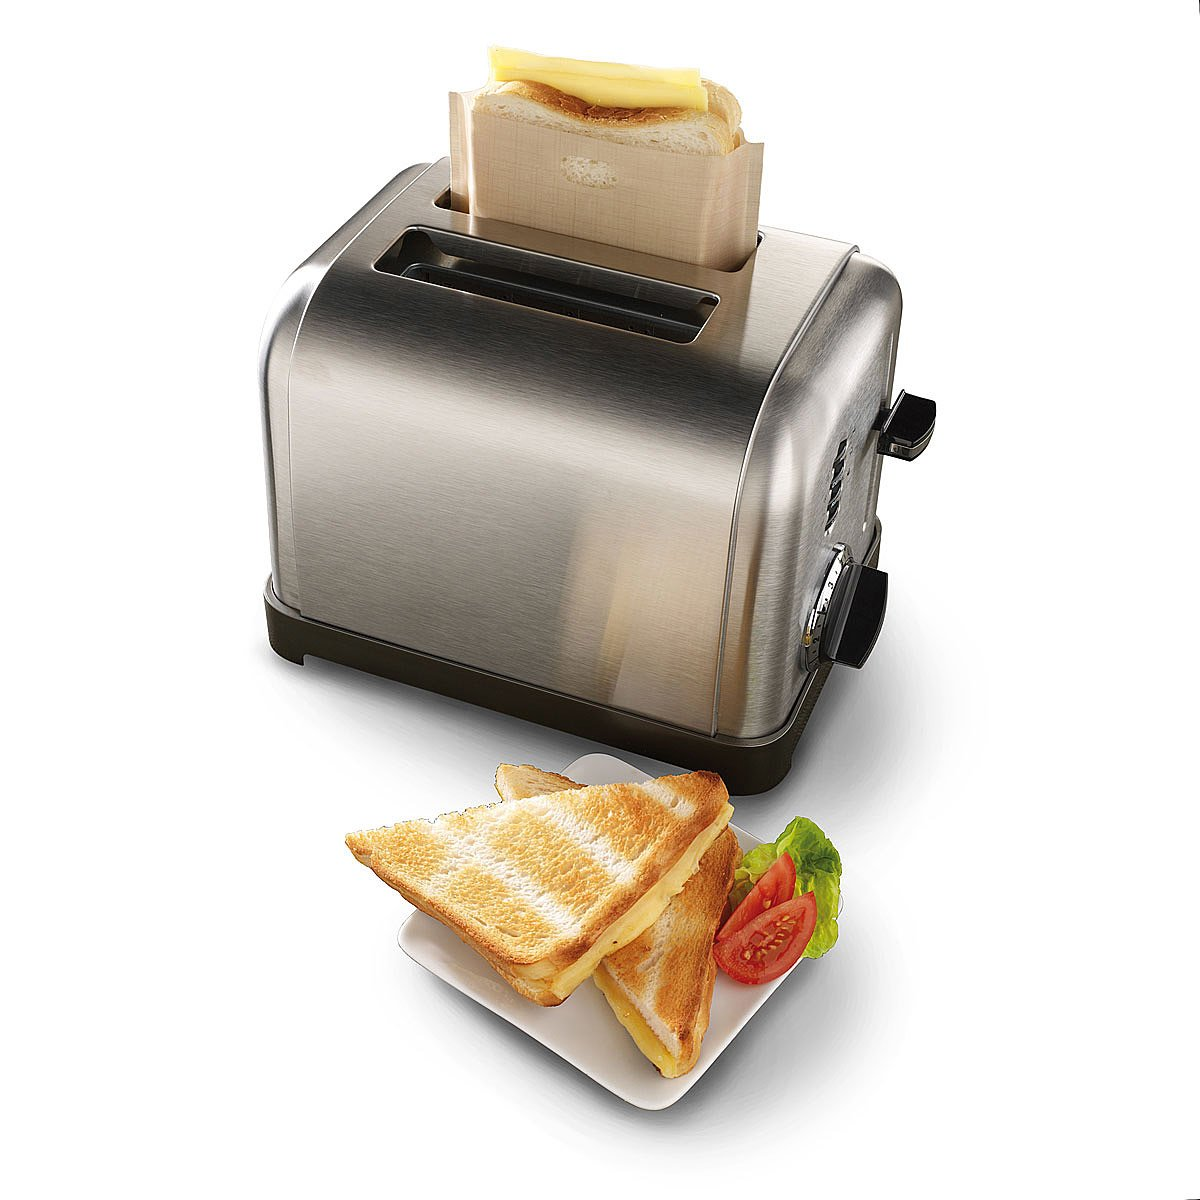 plate psqfb square sandwich prestige price india buy toaster maker in product